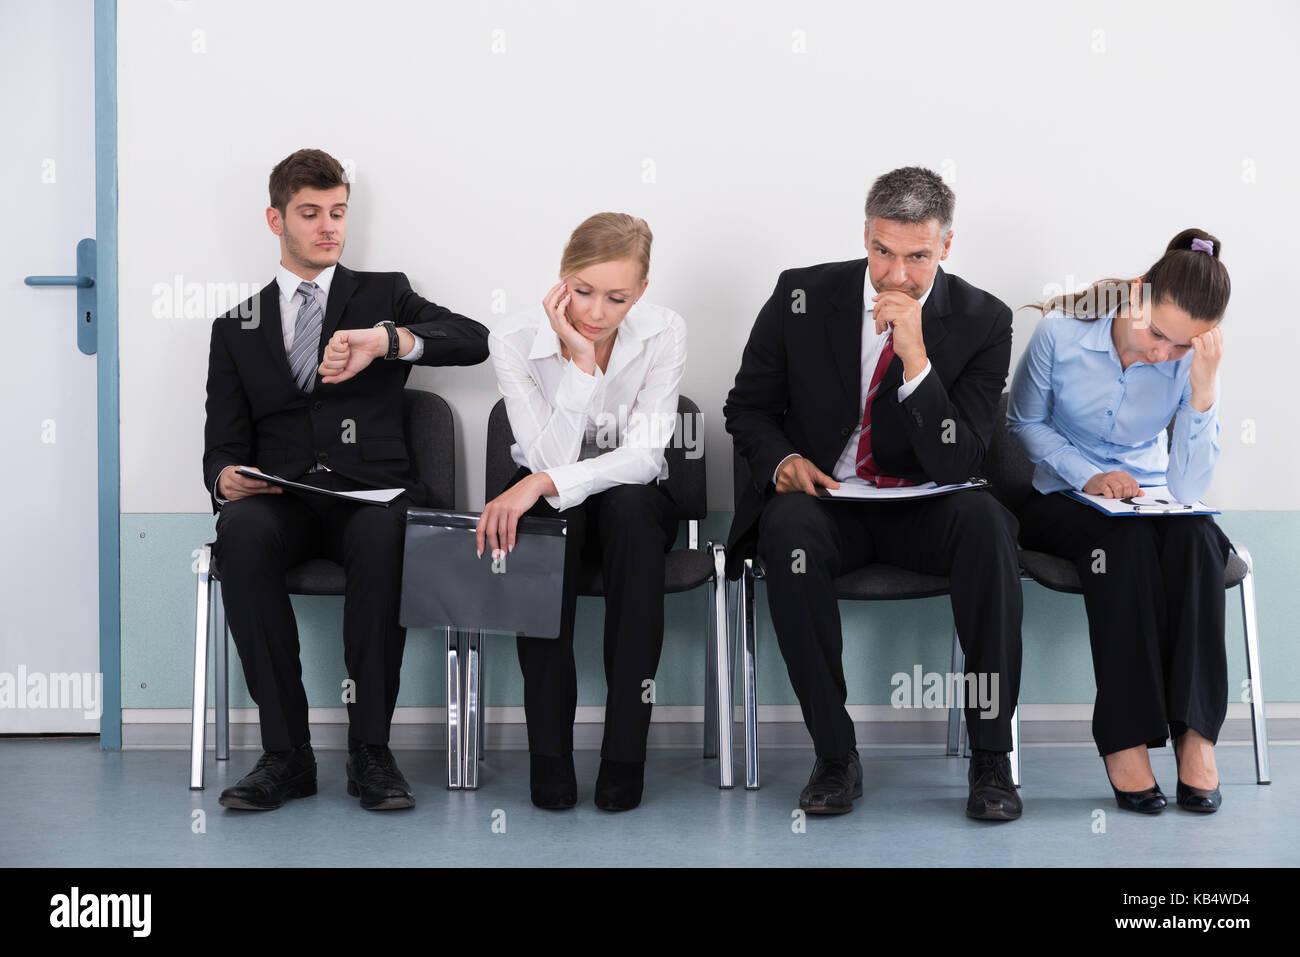 Businesspeople Sitting On Chair Waiting For Job Interview In Office - Stock Image